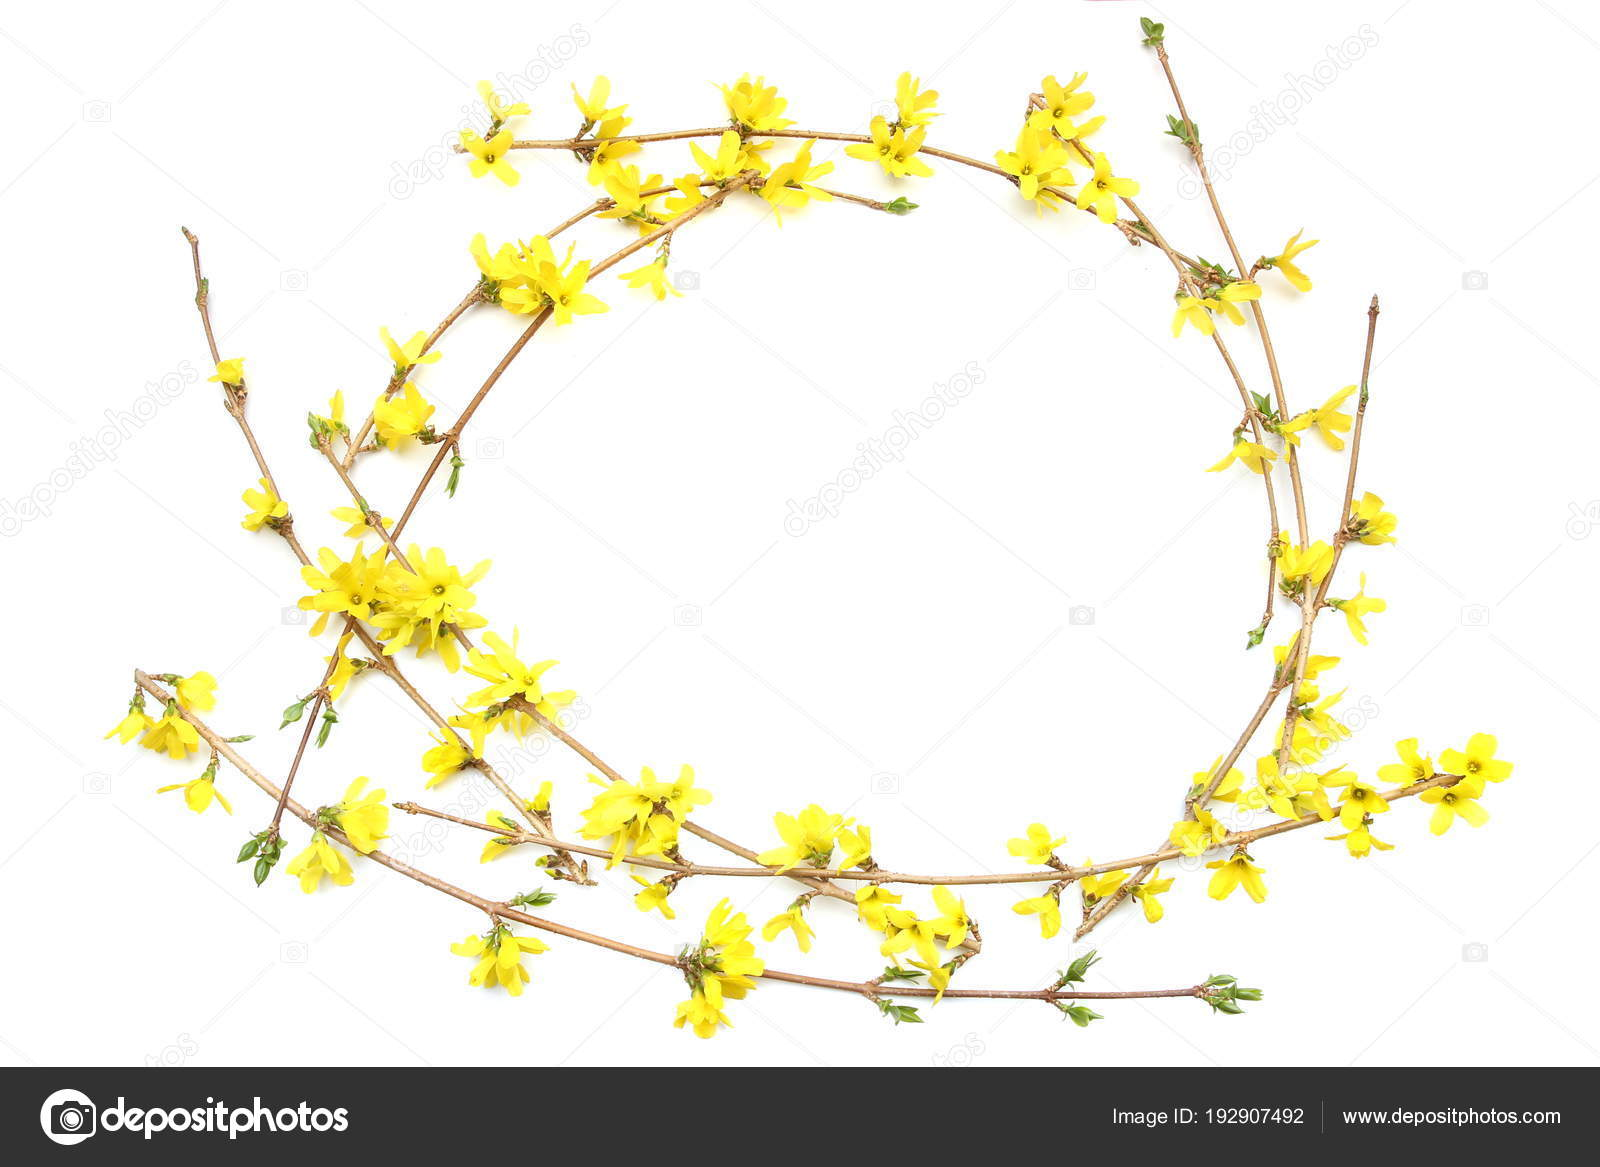 Frame Forsythia Branches Yellow Flowers Isolated White Background